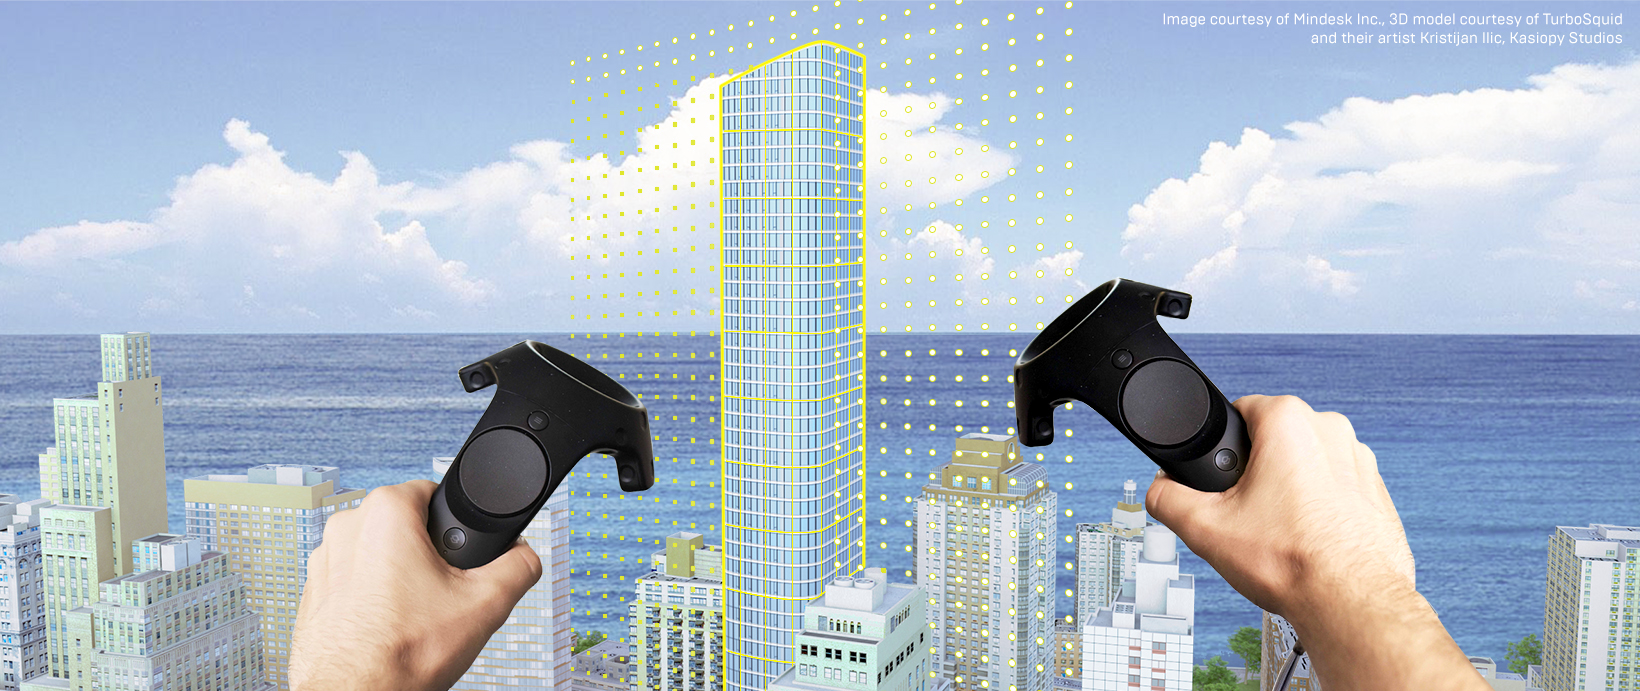 Mindesk brings real-time rendering to VR CAD modeling with